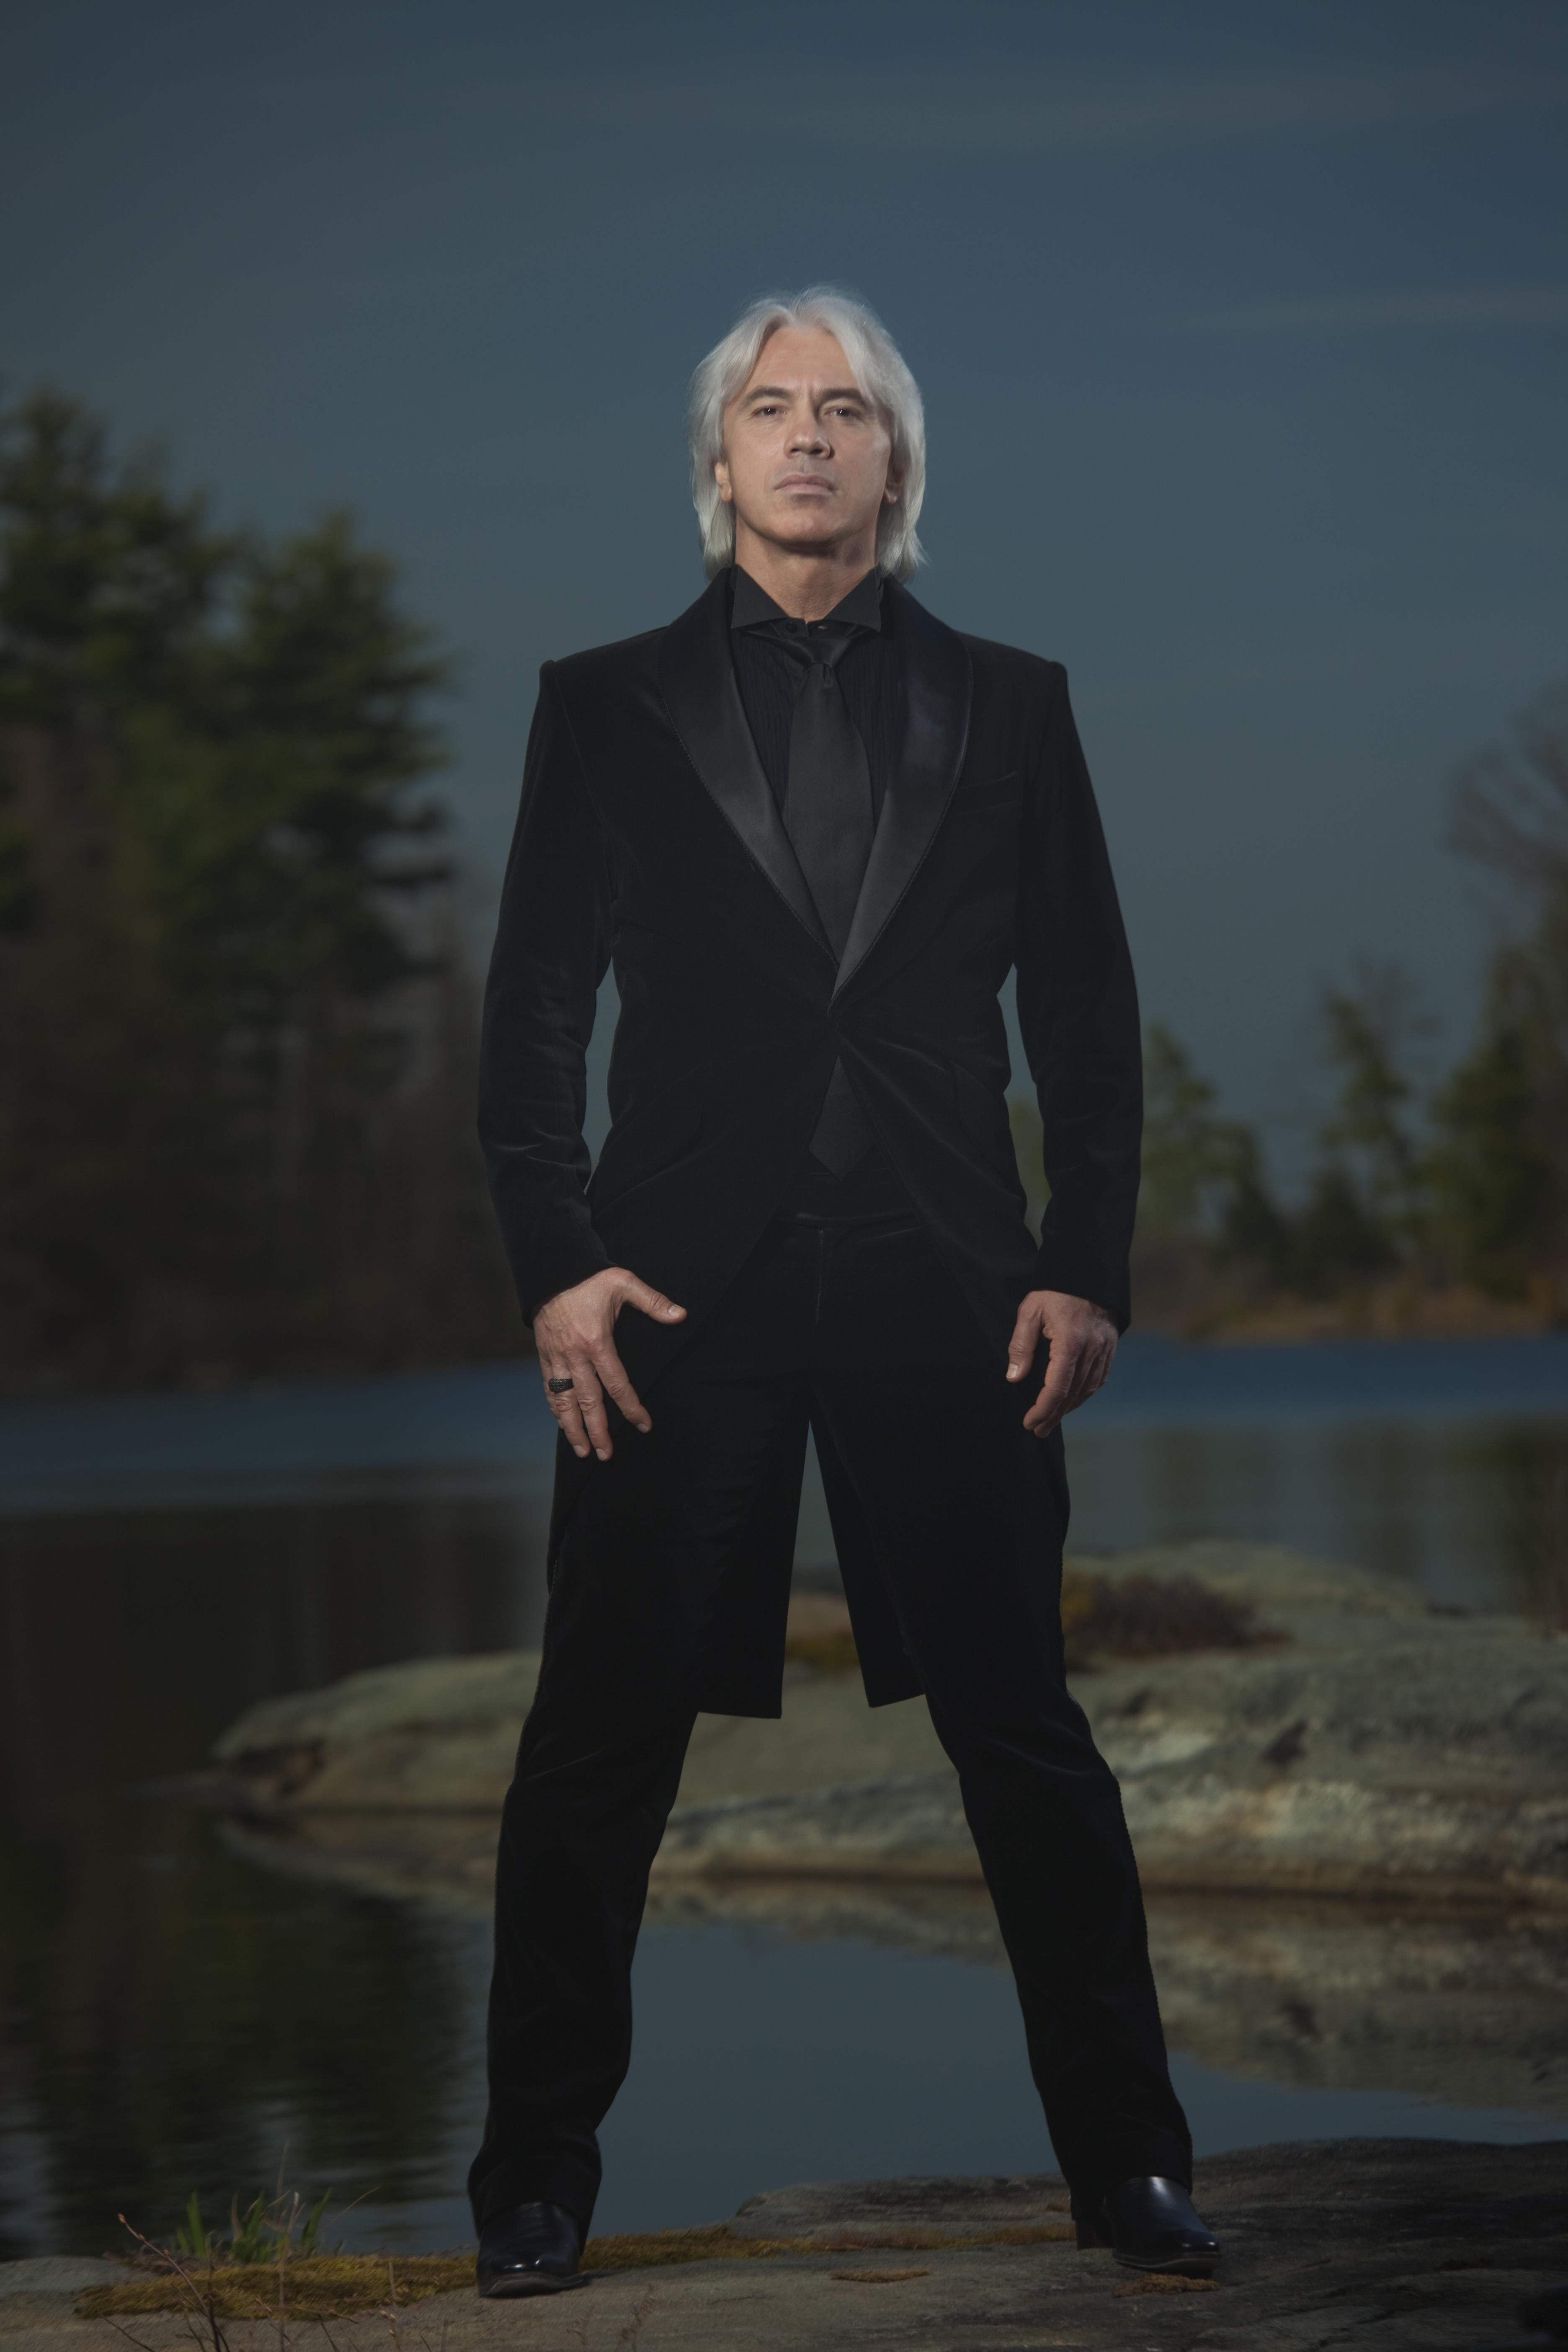 The heirs of Dmitry Hvorostovsky will have to divide his London townhouse 11/24/2017 26